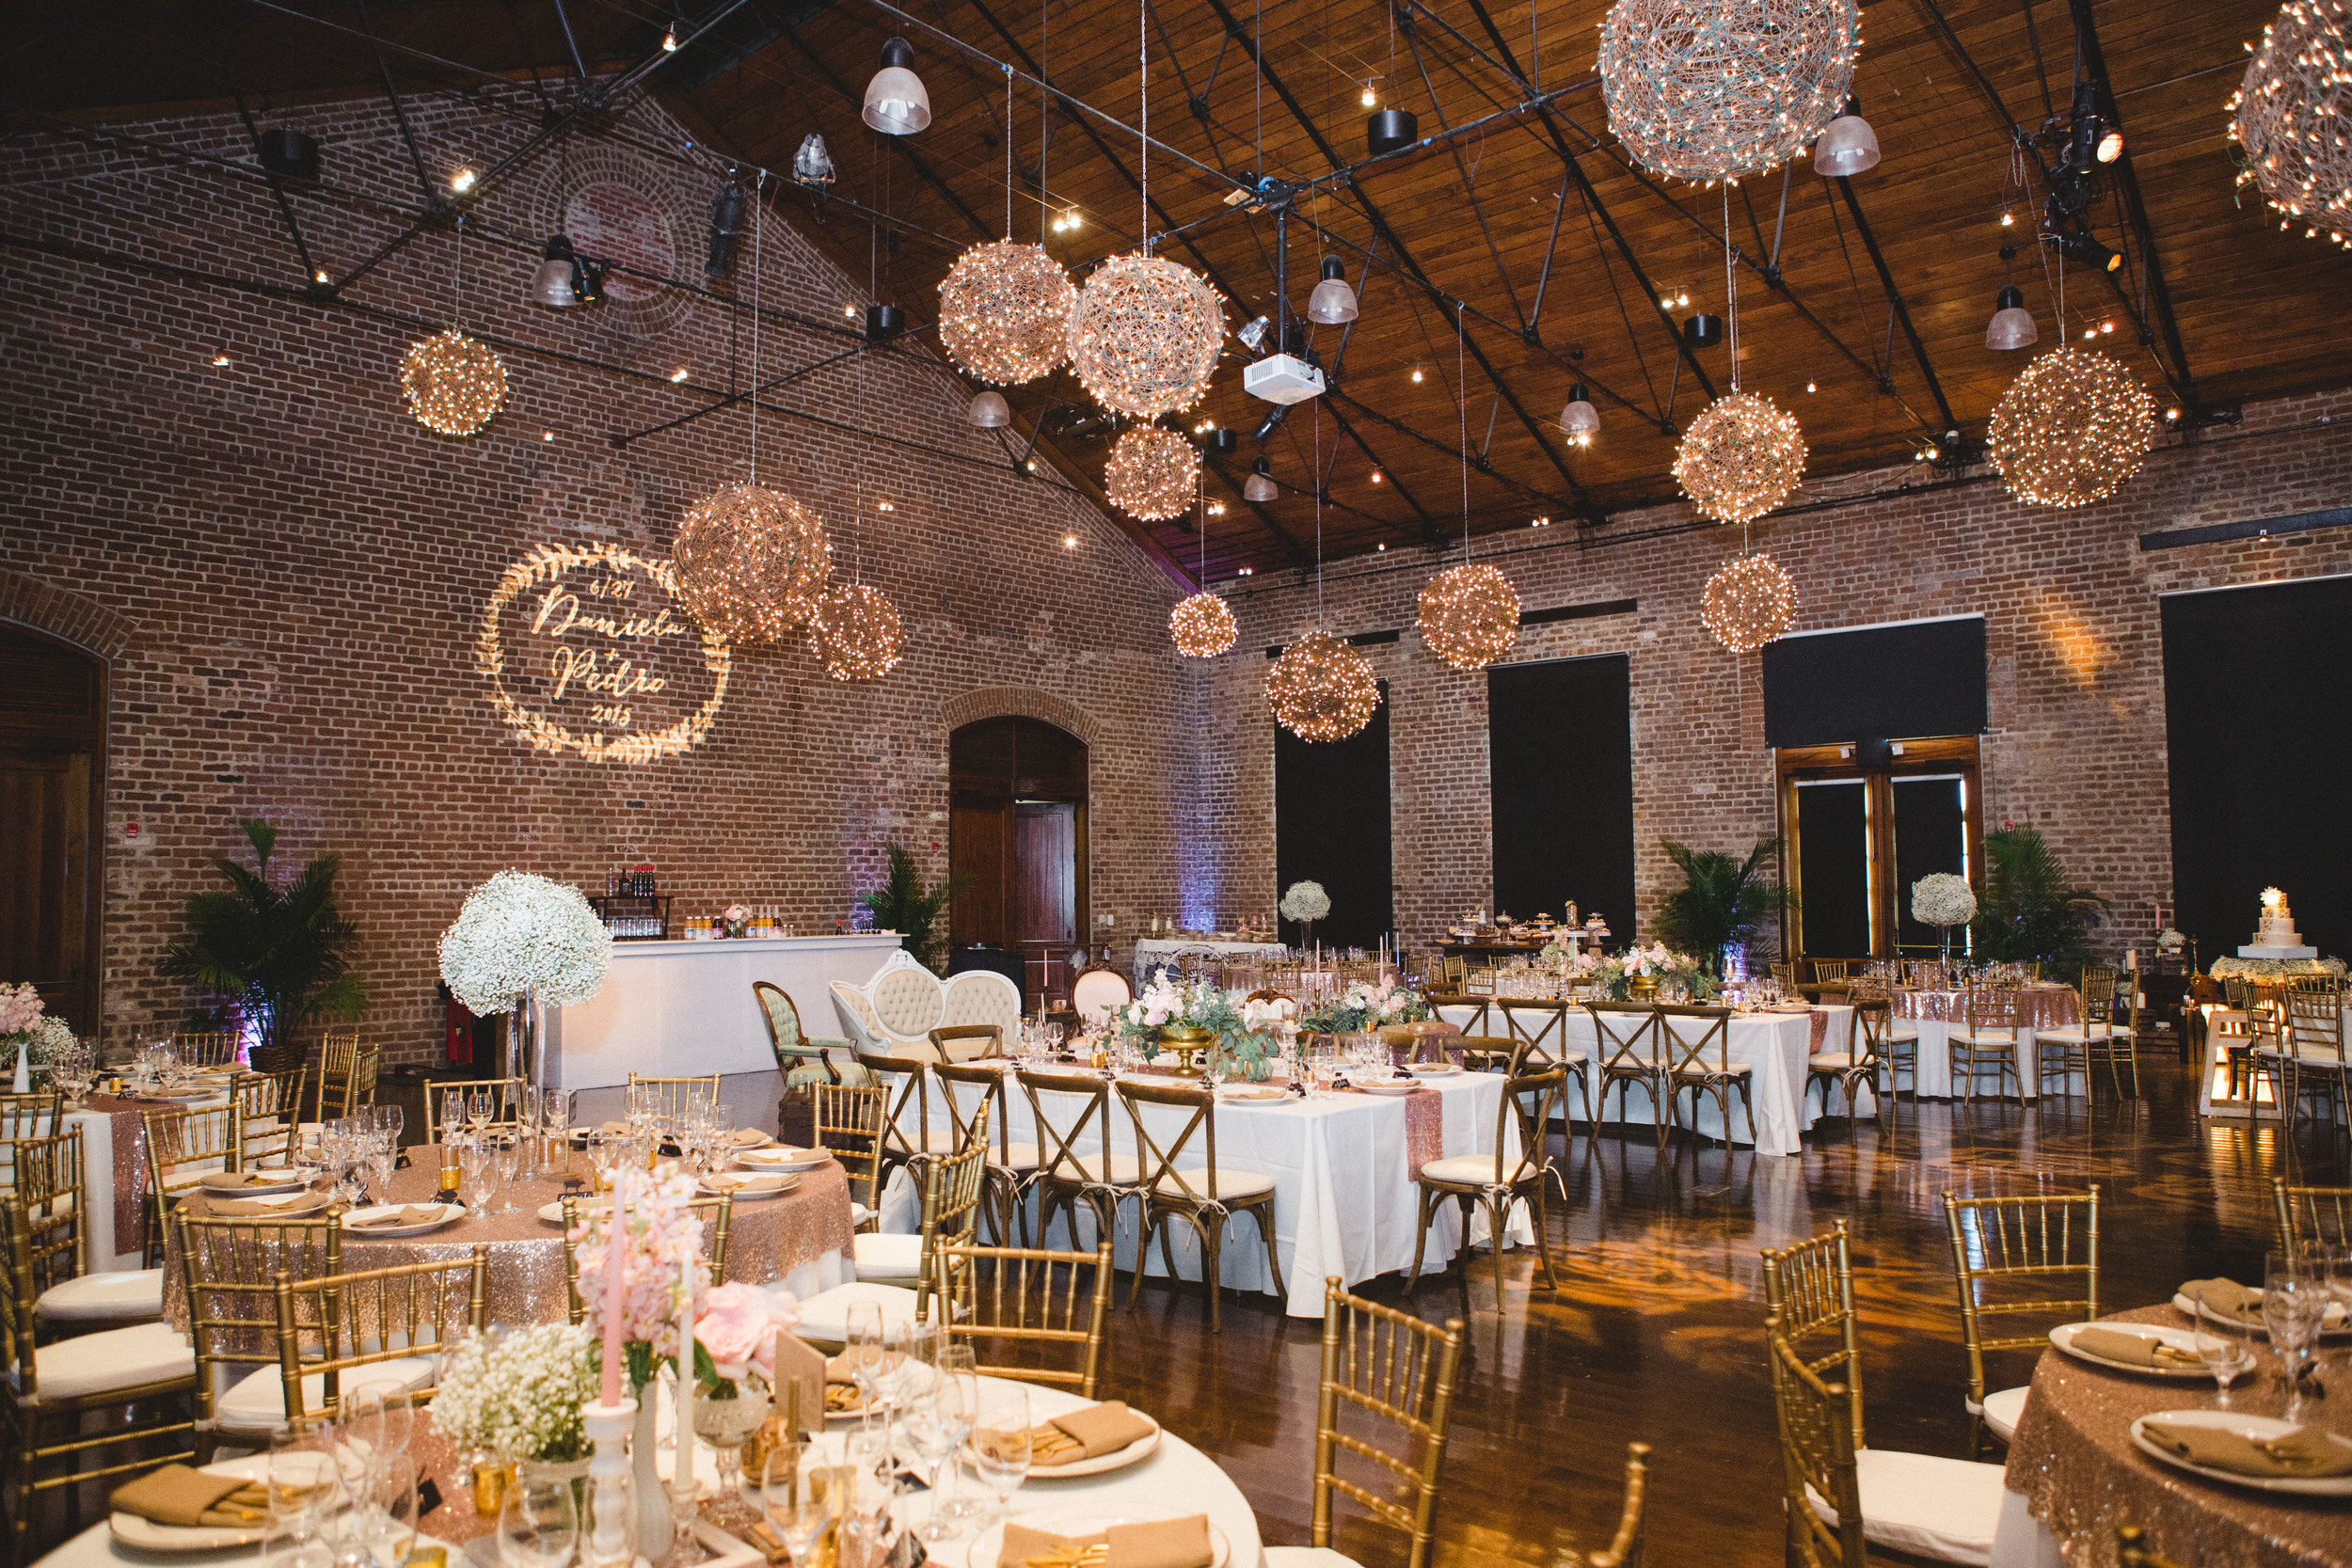 daniela-and-pedro-wedding-izzy-hudgins-photography-a-to-zinnias-whitfield-square-charles-h-morris-center-wedding-ivoyy-and-beau-bridal-boutique-dorie-hayley-paige-savannah-wedding-planner-savannah-bridal-boutique-savannah-weddings-46.jpg